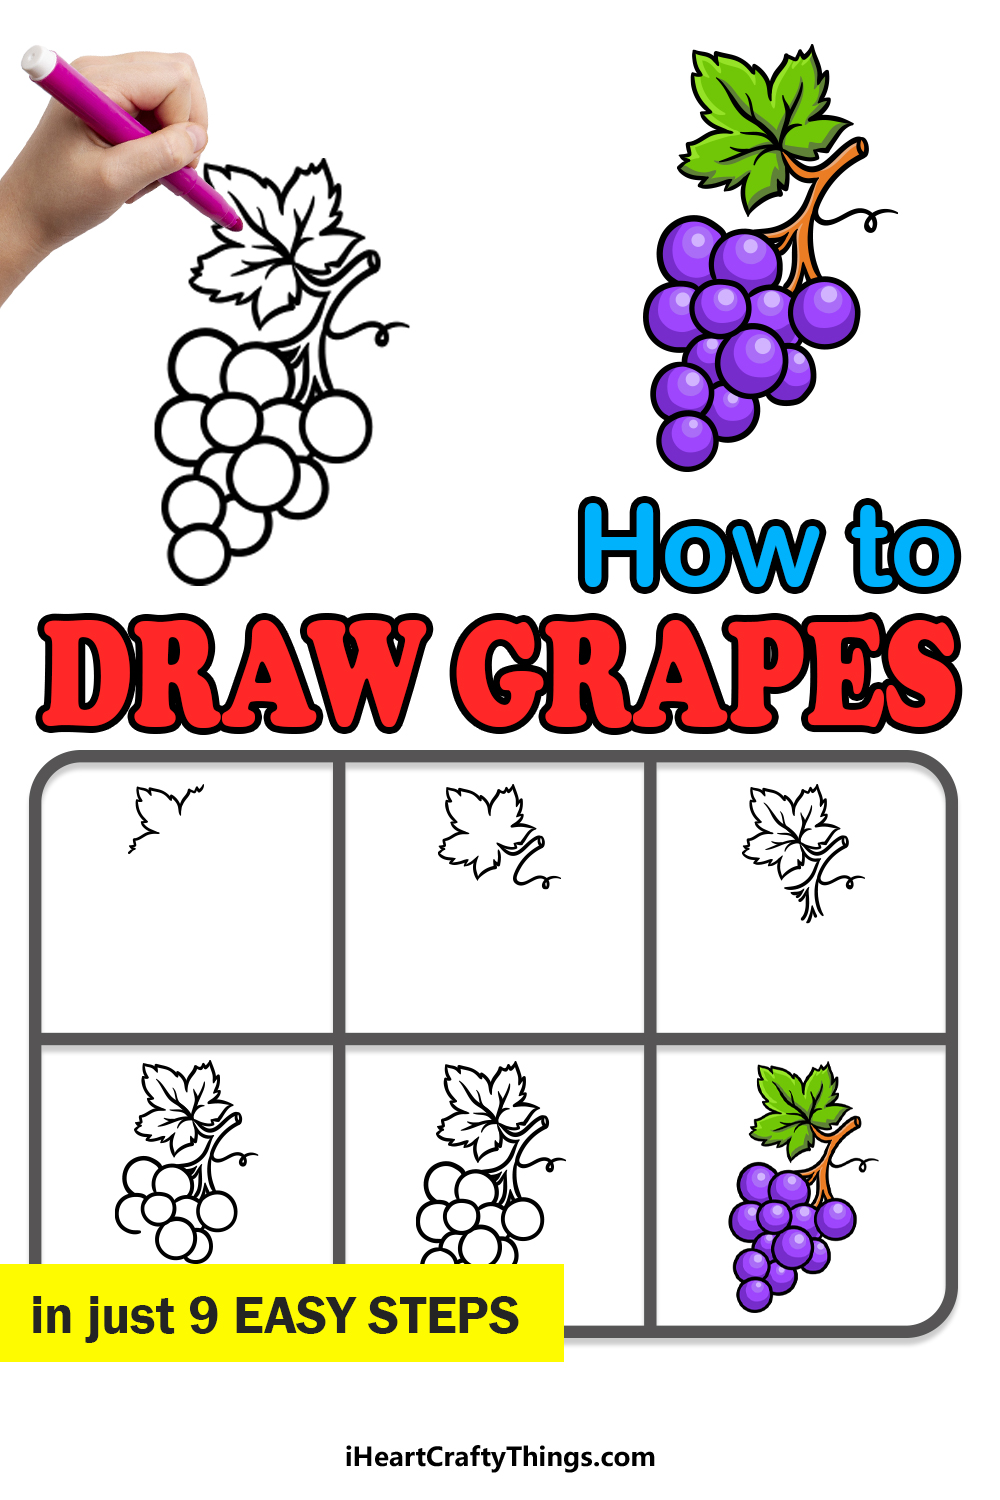 how to draw grapes in 9 easy steps